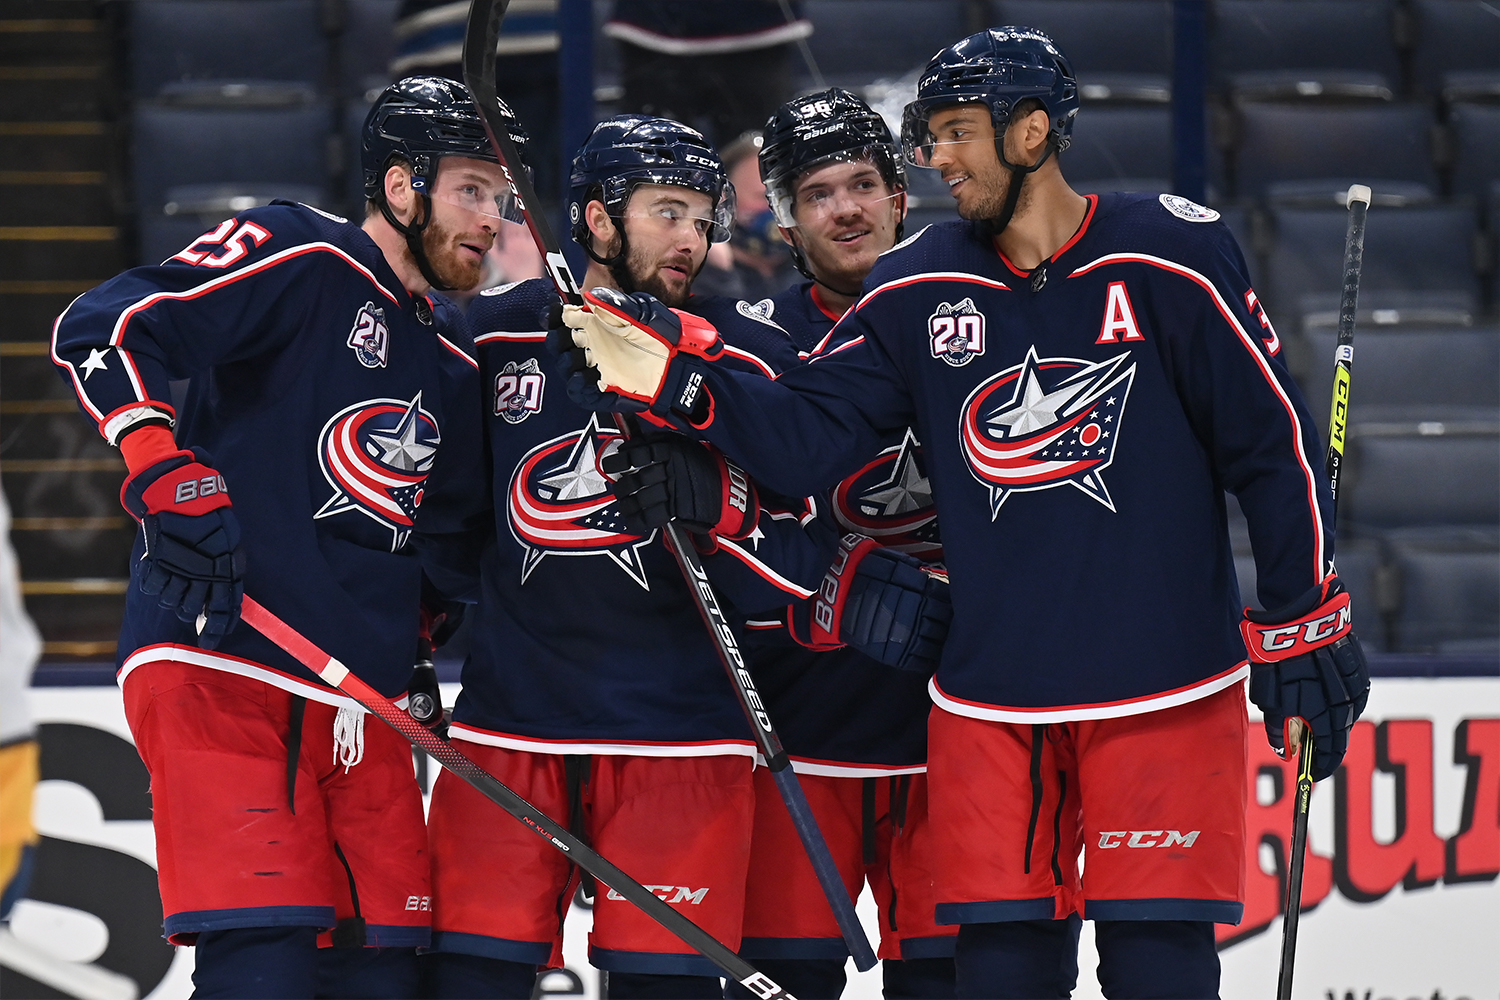 Mikhail Grigorenko #25, far left, Emil Bemstrom #52, Jack Roslovic #96 and Seth Jones #3, all of the Columbus Blue Jackets celebrate Bemstrom's second goal of the third period against the Nashville Predators at Nationwide Arena on May 3, 2021